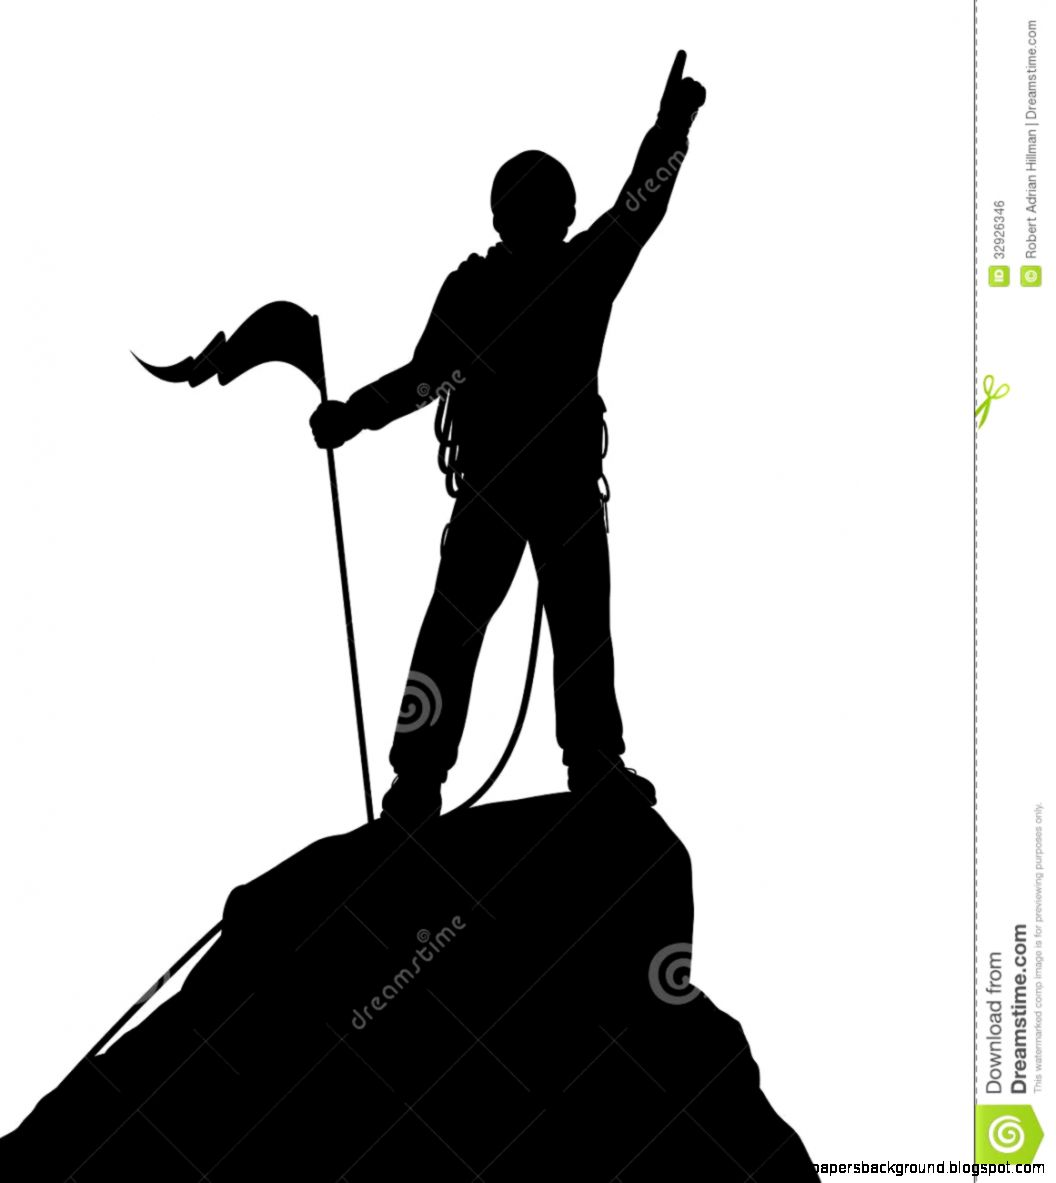 1056x1183 Mountain Climbing Silhouette Wallpapers Background